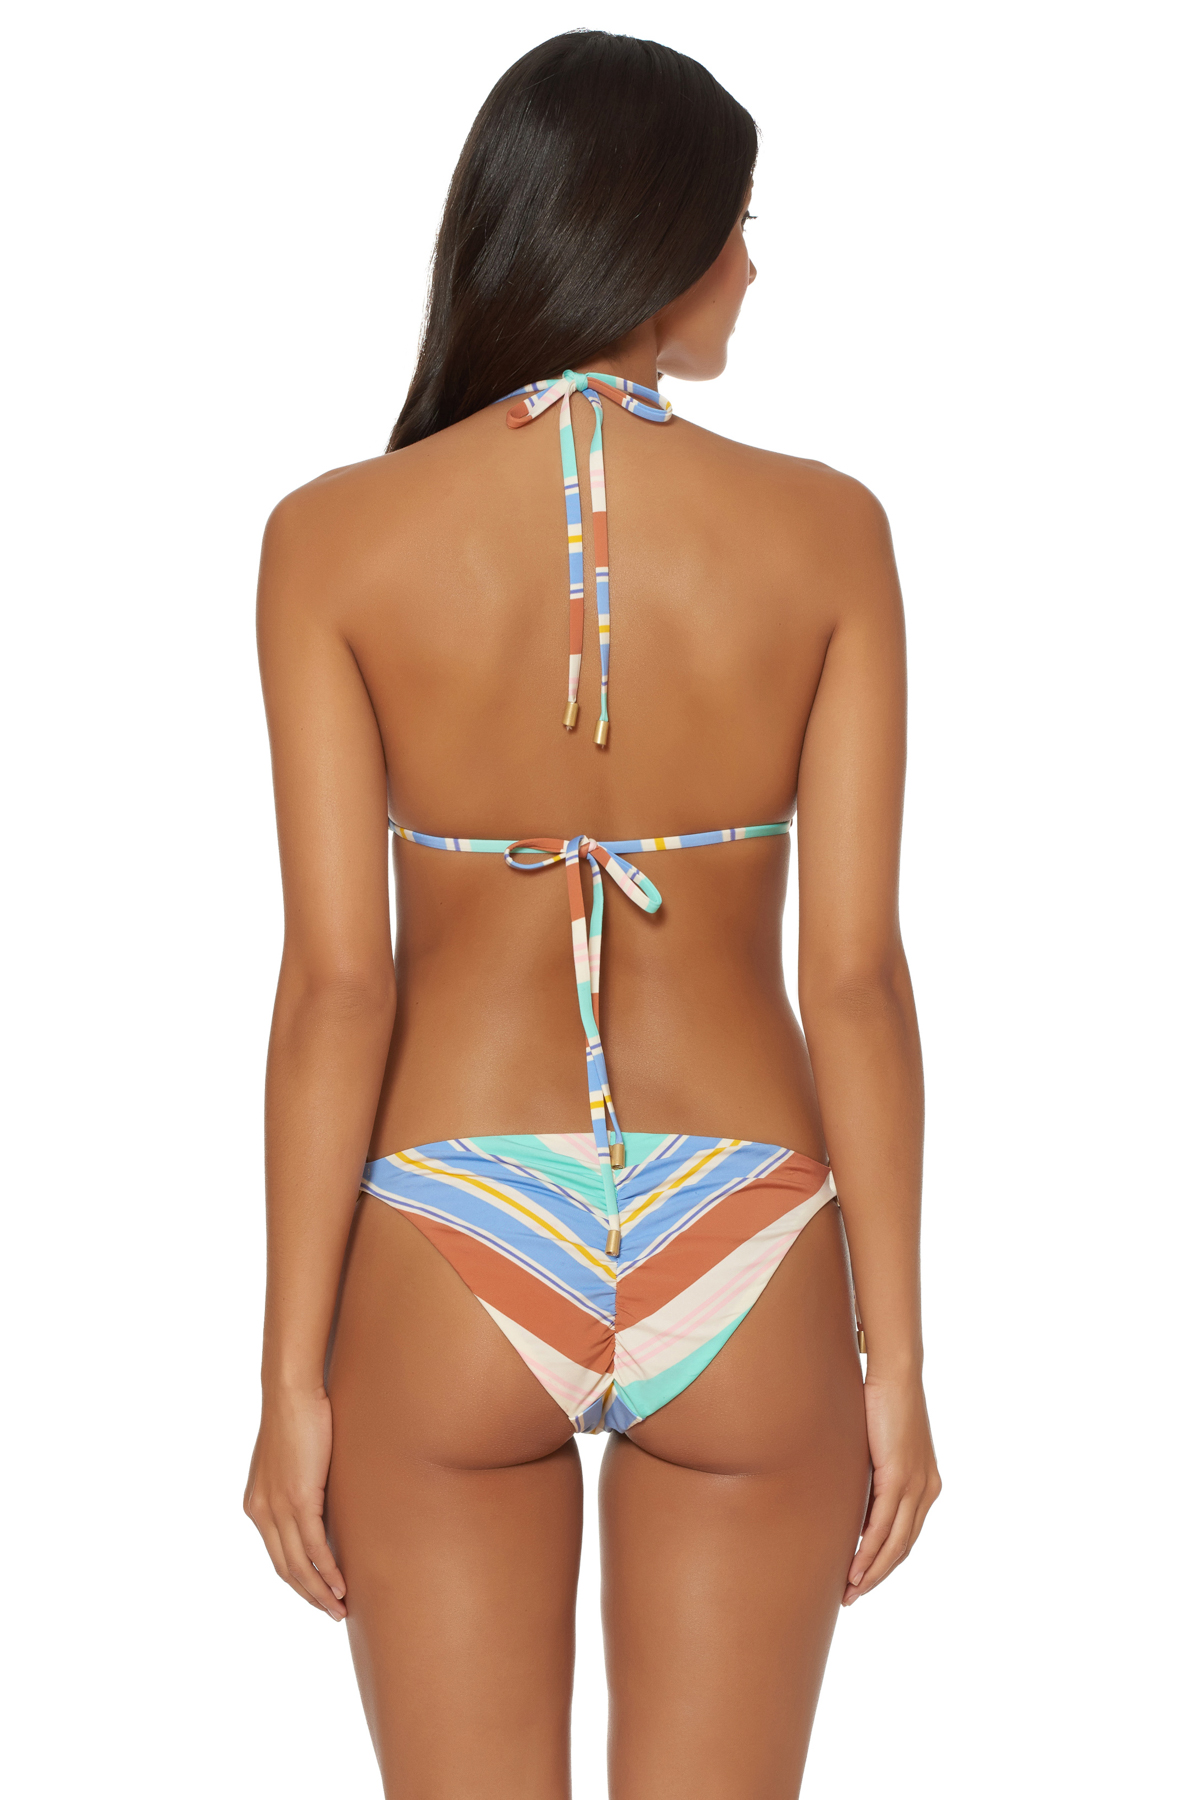 Ring Sliding Triangle Bikini Top - Aquarius Stripe/Blush 2